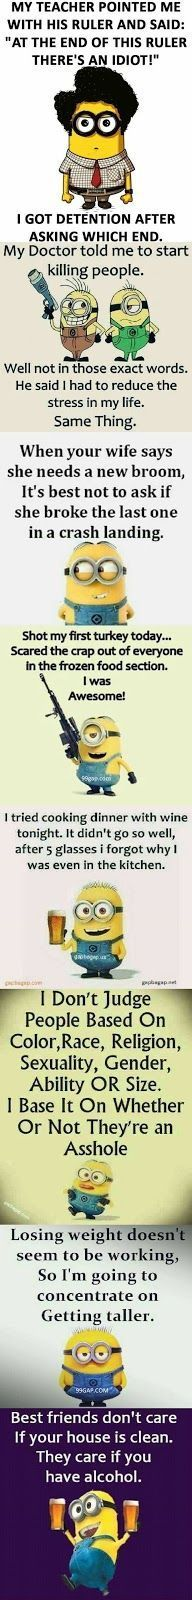 #Funny #Quotes Collection By The Minions